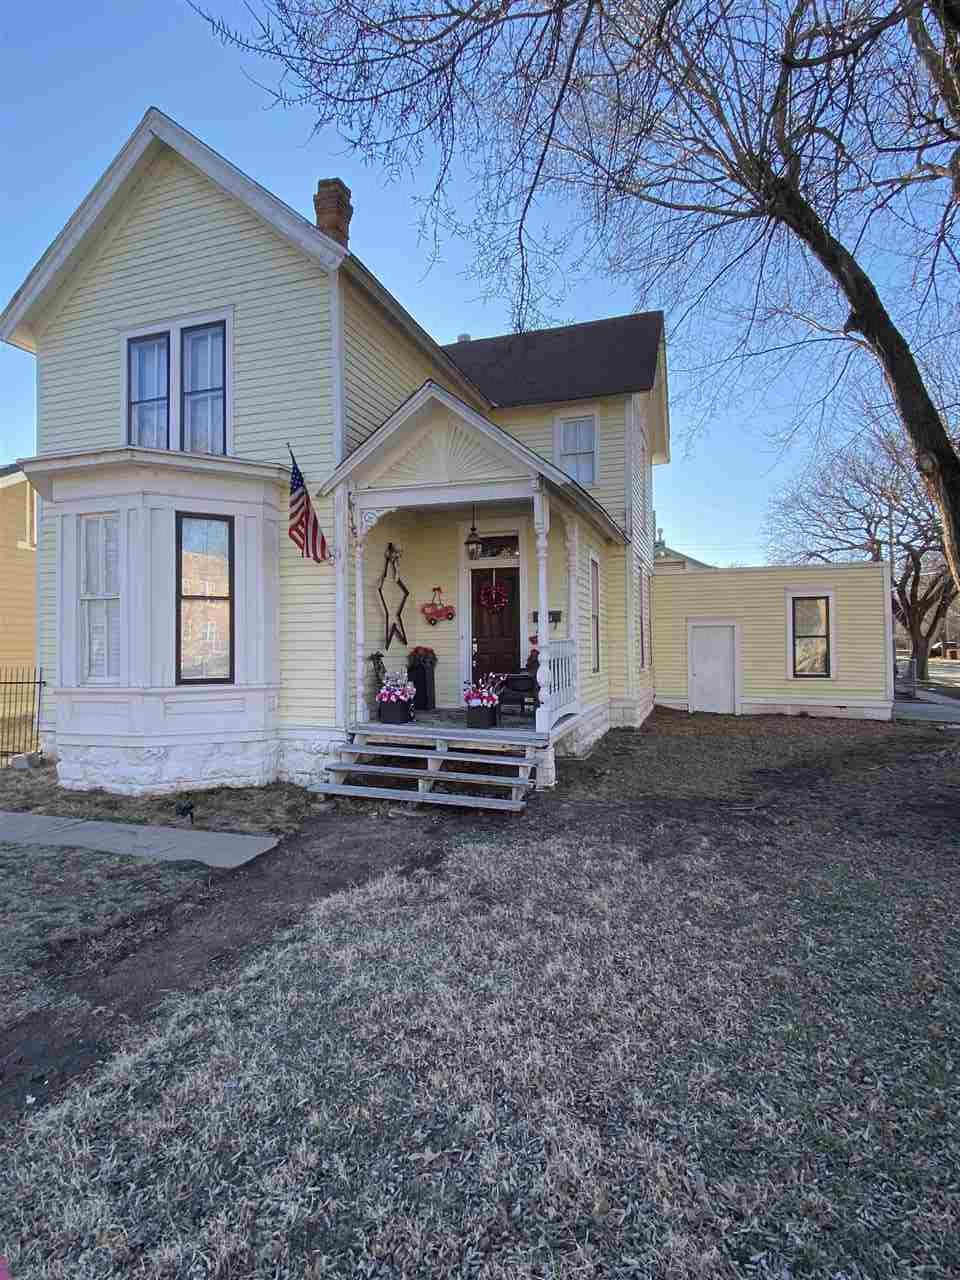 Welcome home to this cozy, charming 3 bedroom, 2 car garage home in the city! This beautiful home ha